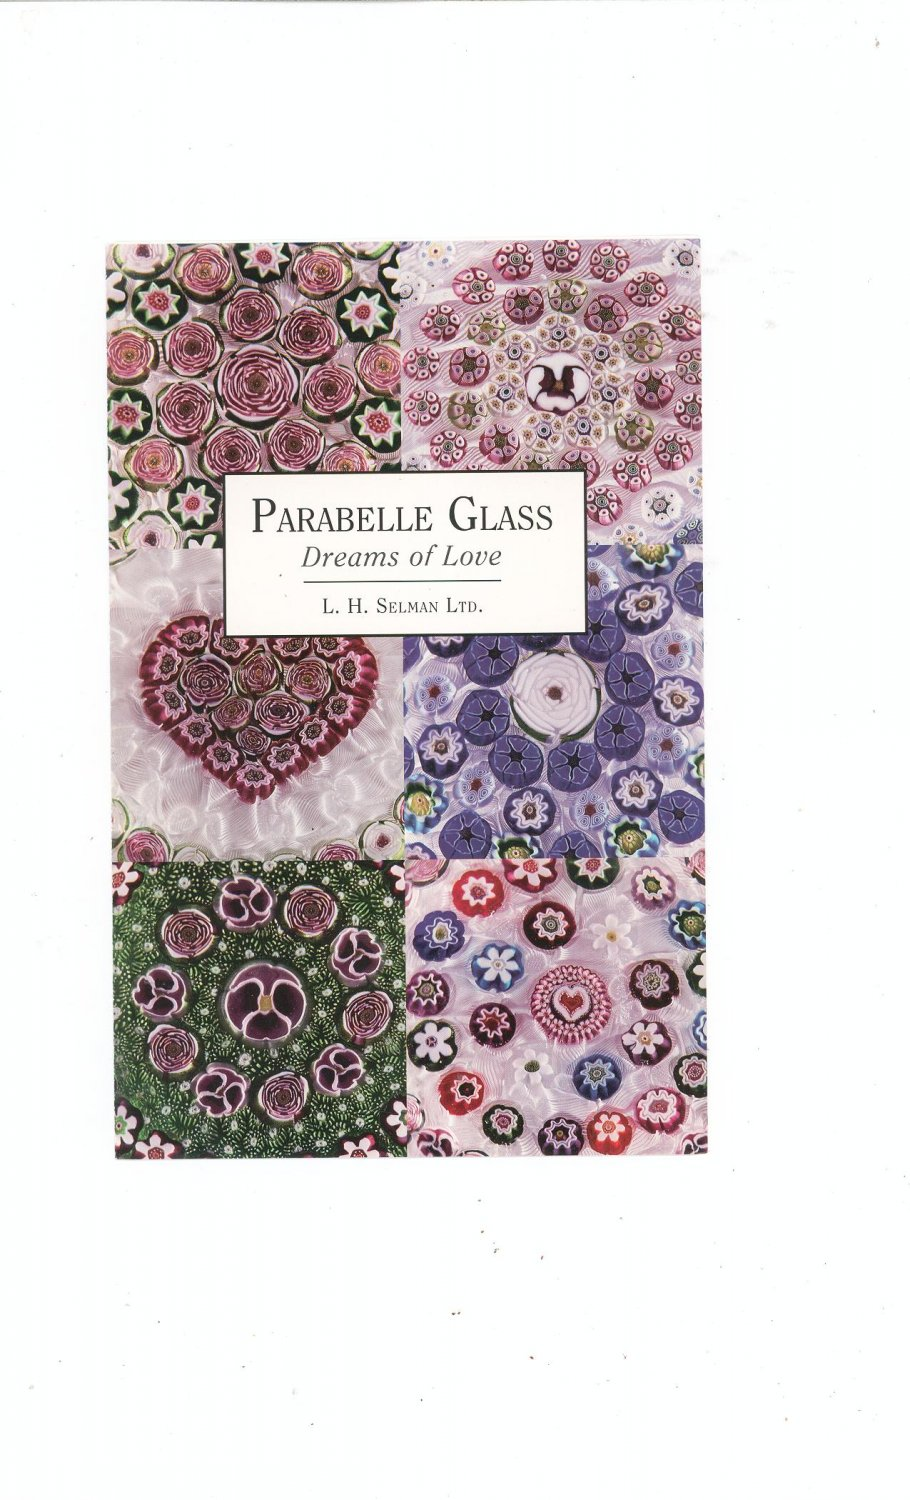 Parabelle Glass Dreams Of Love Catalog / Brochure by L. H. Selman Ltd. Paperweights